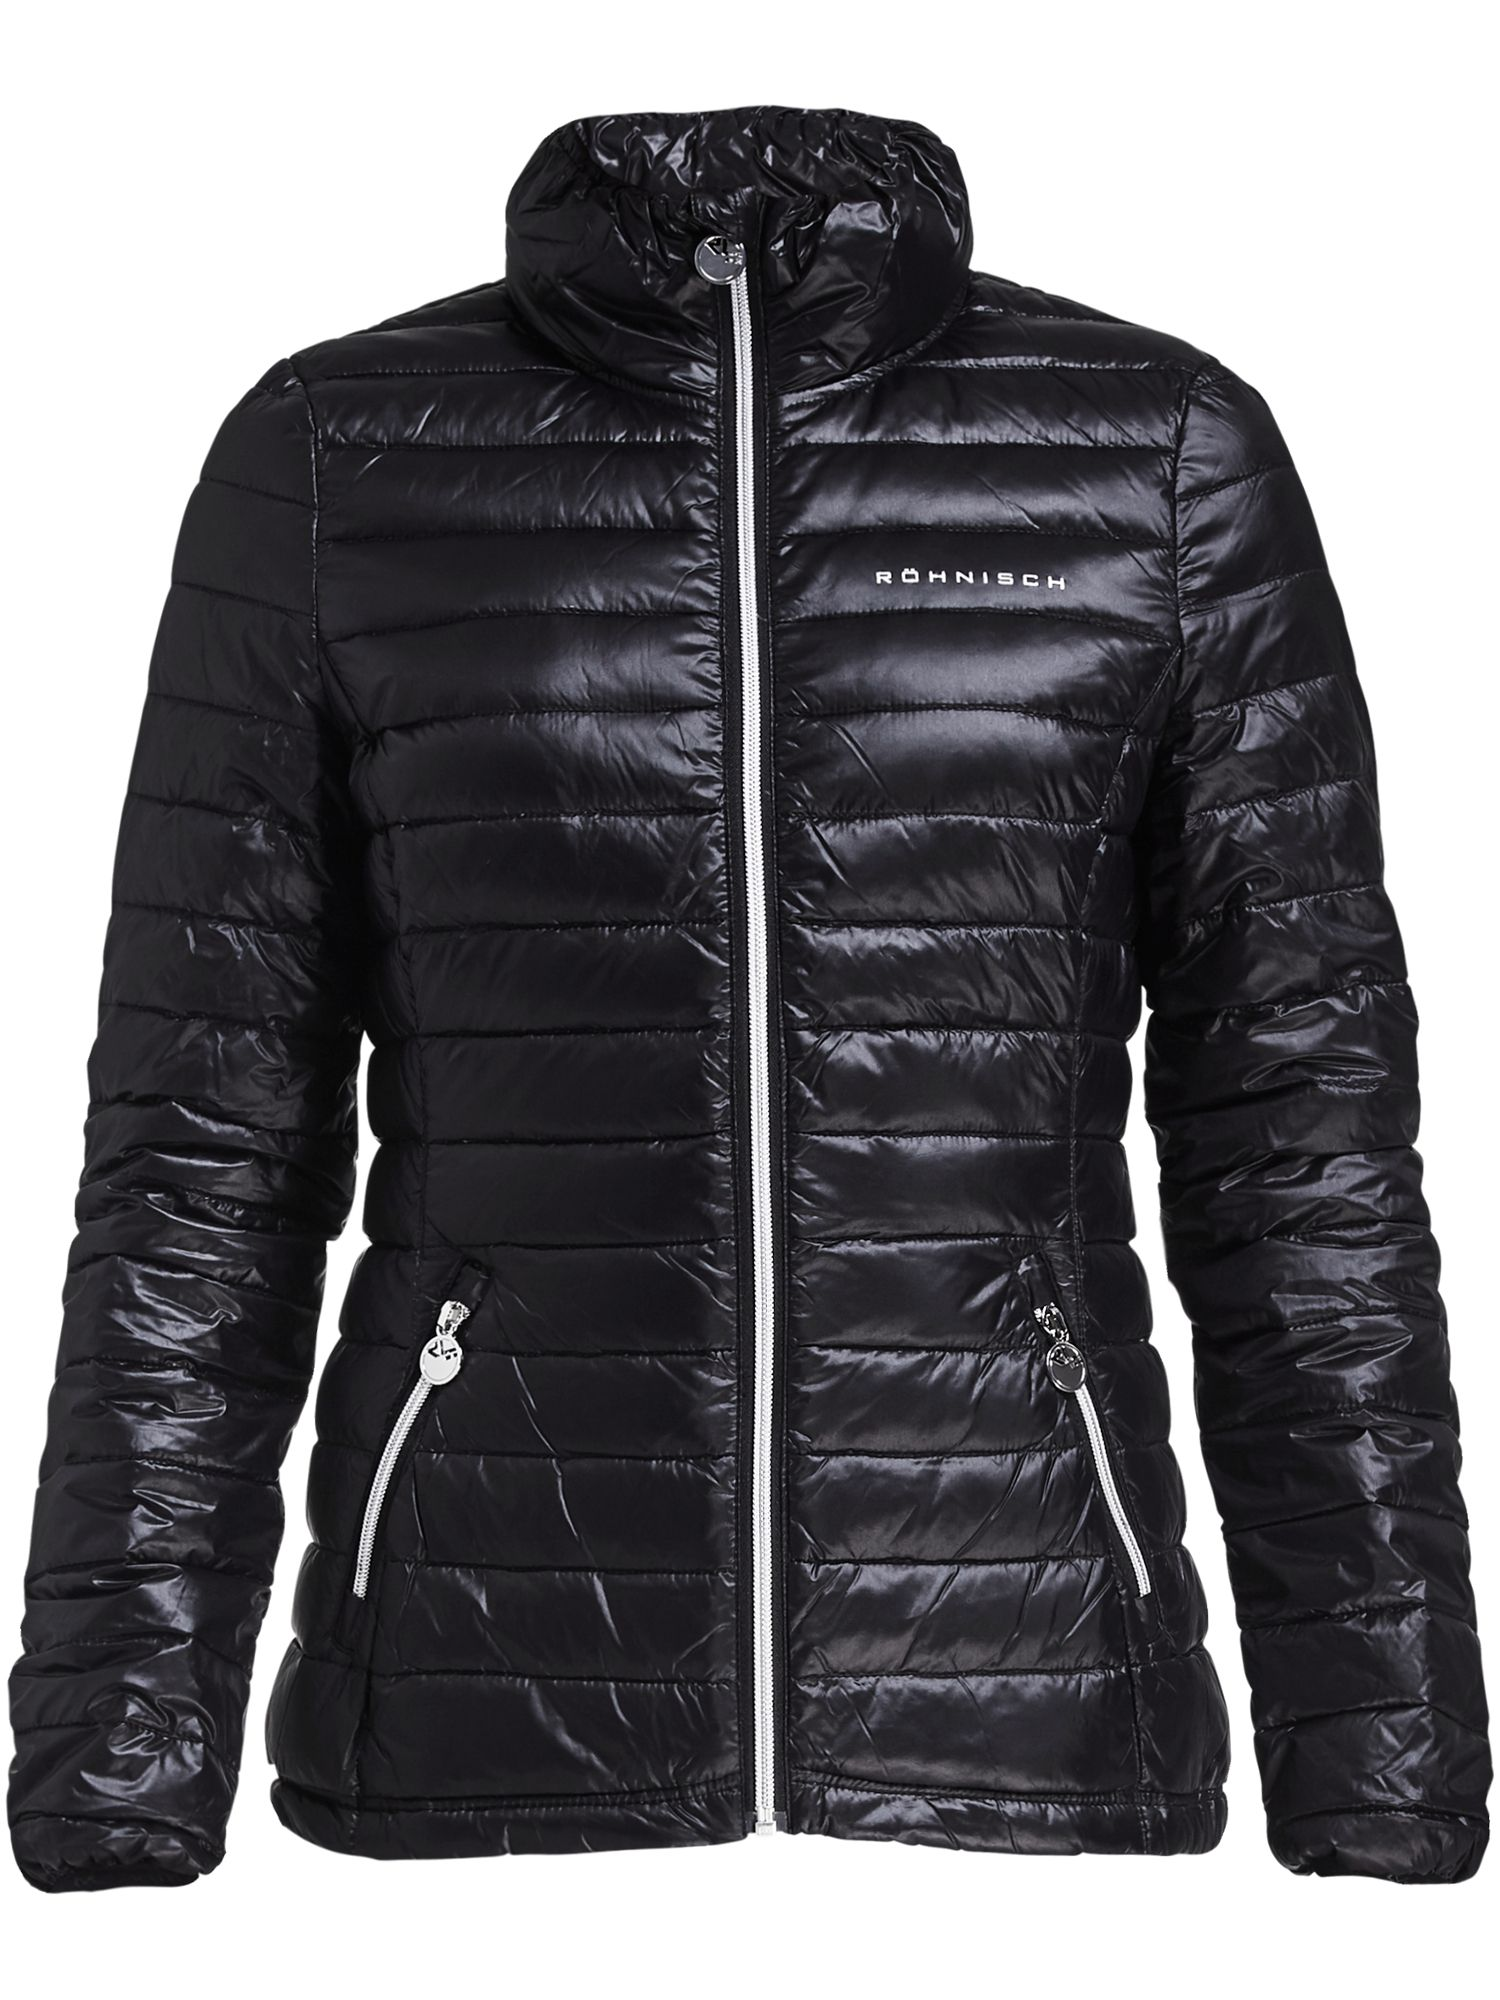 Rohnisch Light Down Jacket, Black